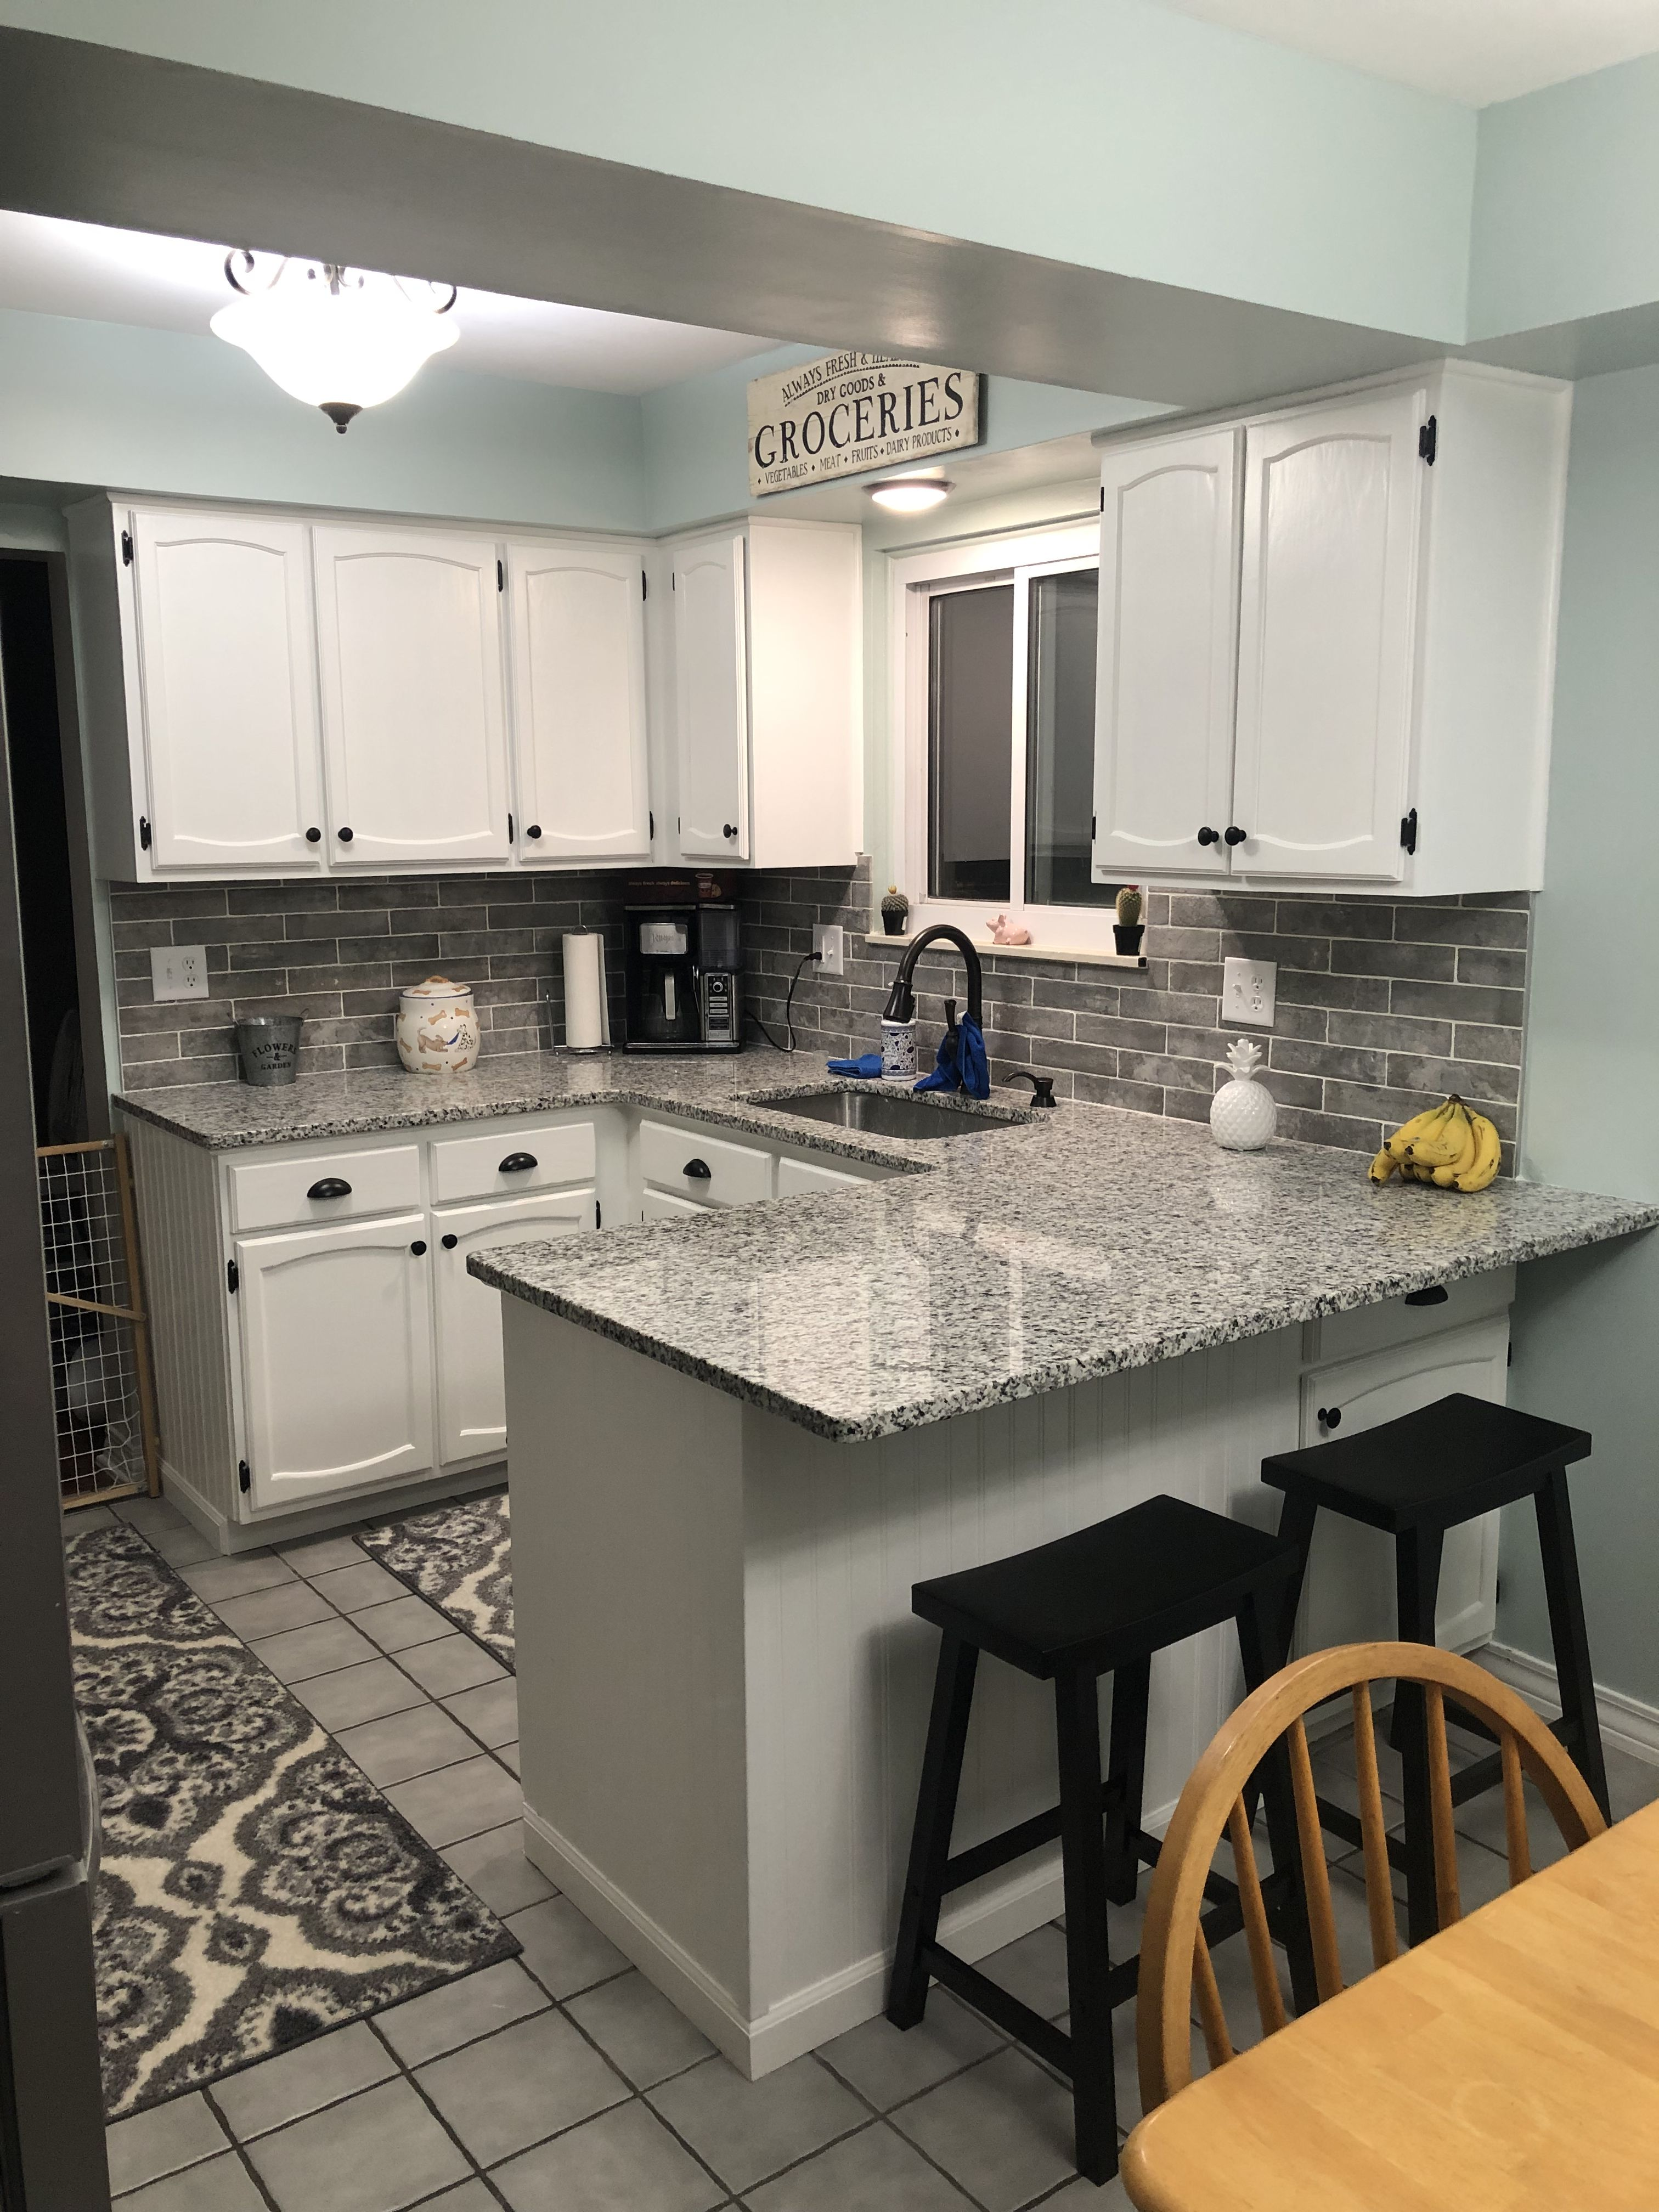 Kitchen painted with Chantily Lace (Benjamin